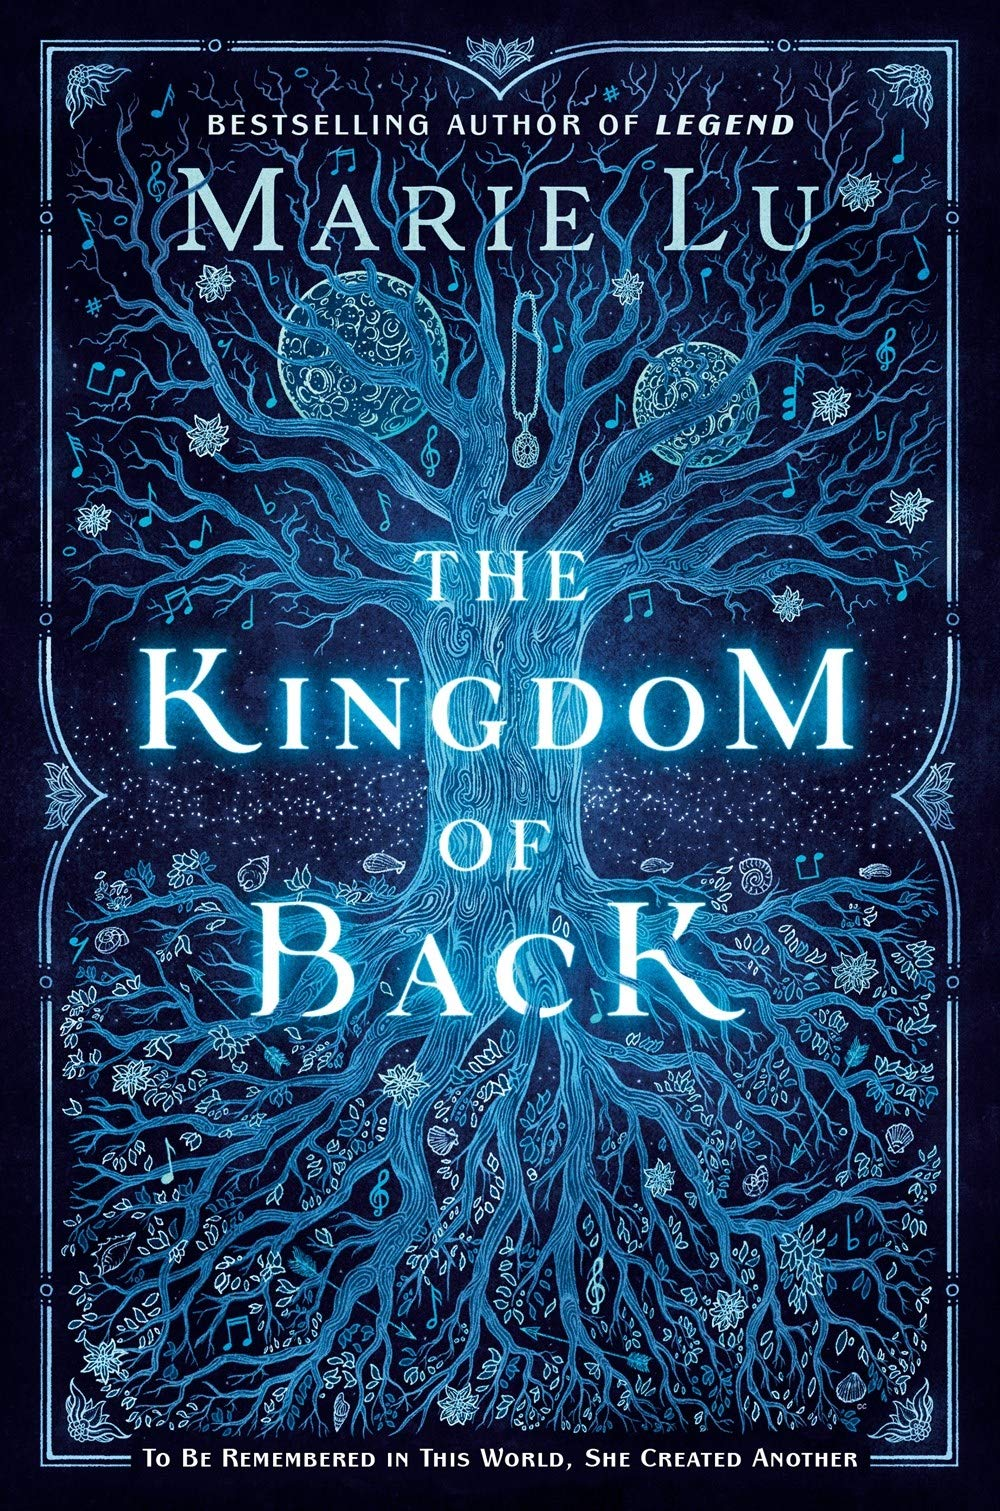 Amazon.com: The Kingdom of Back (9781524739010): Lu, Marie: Books